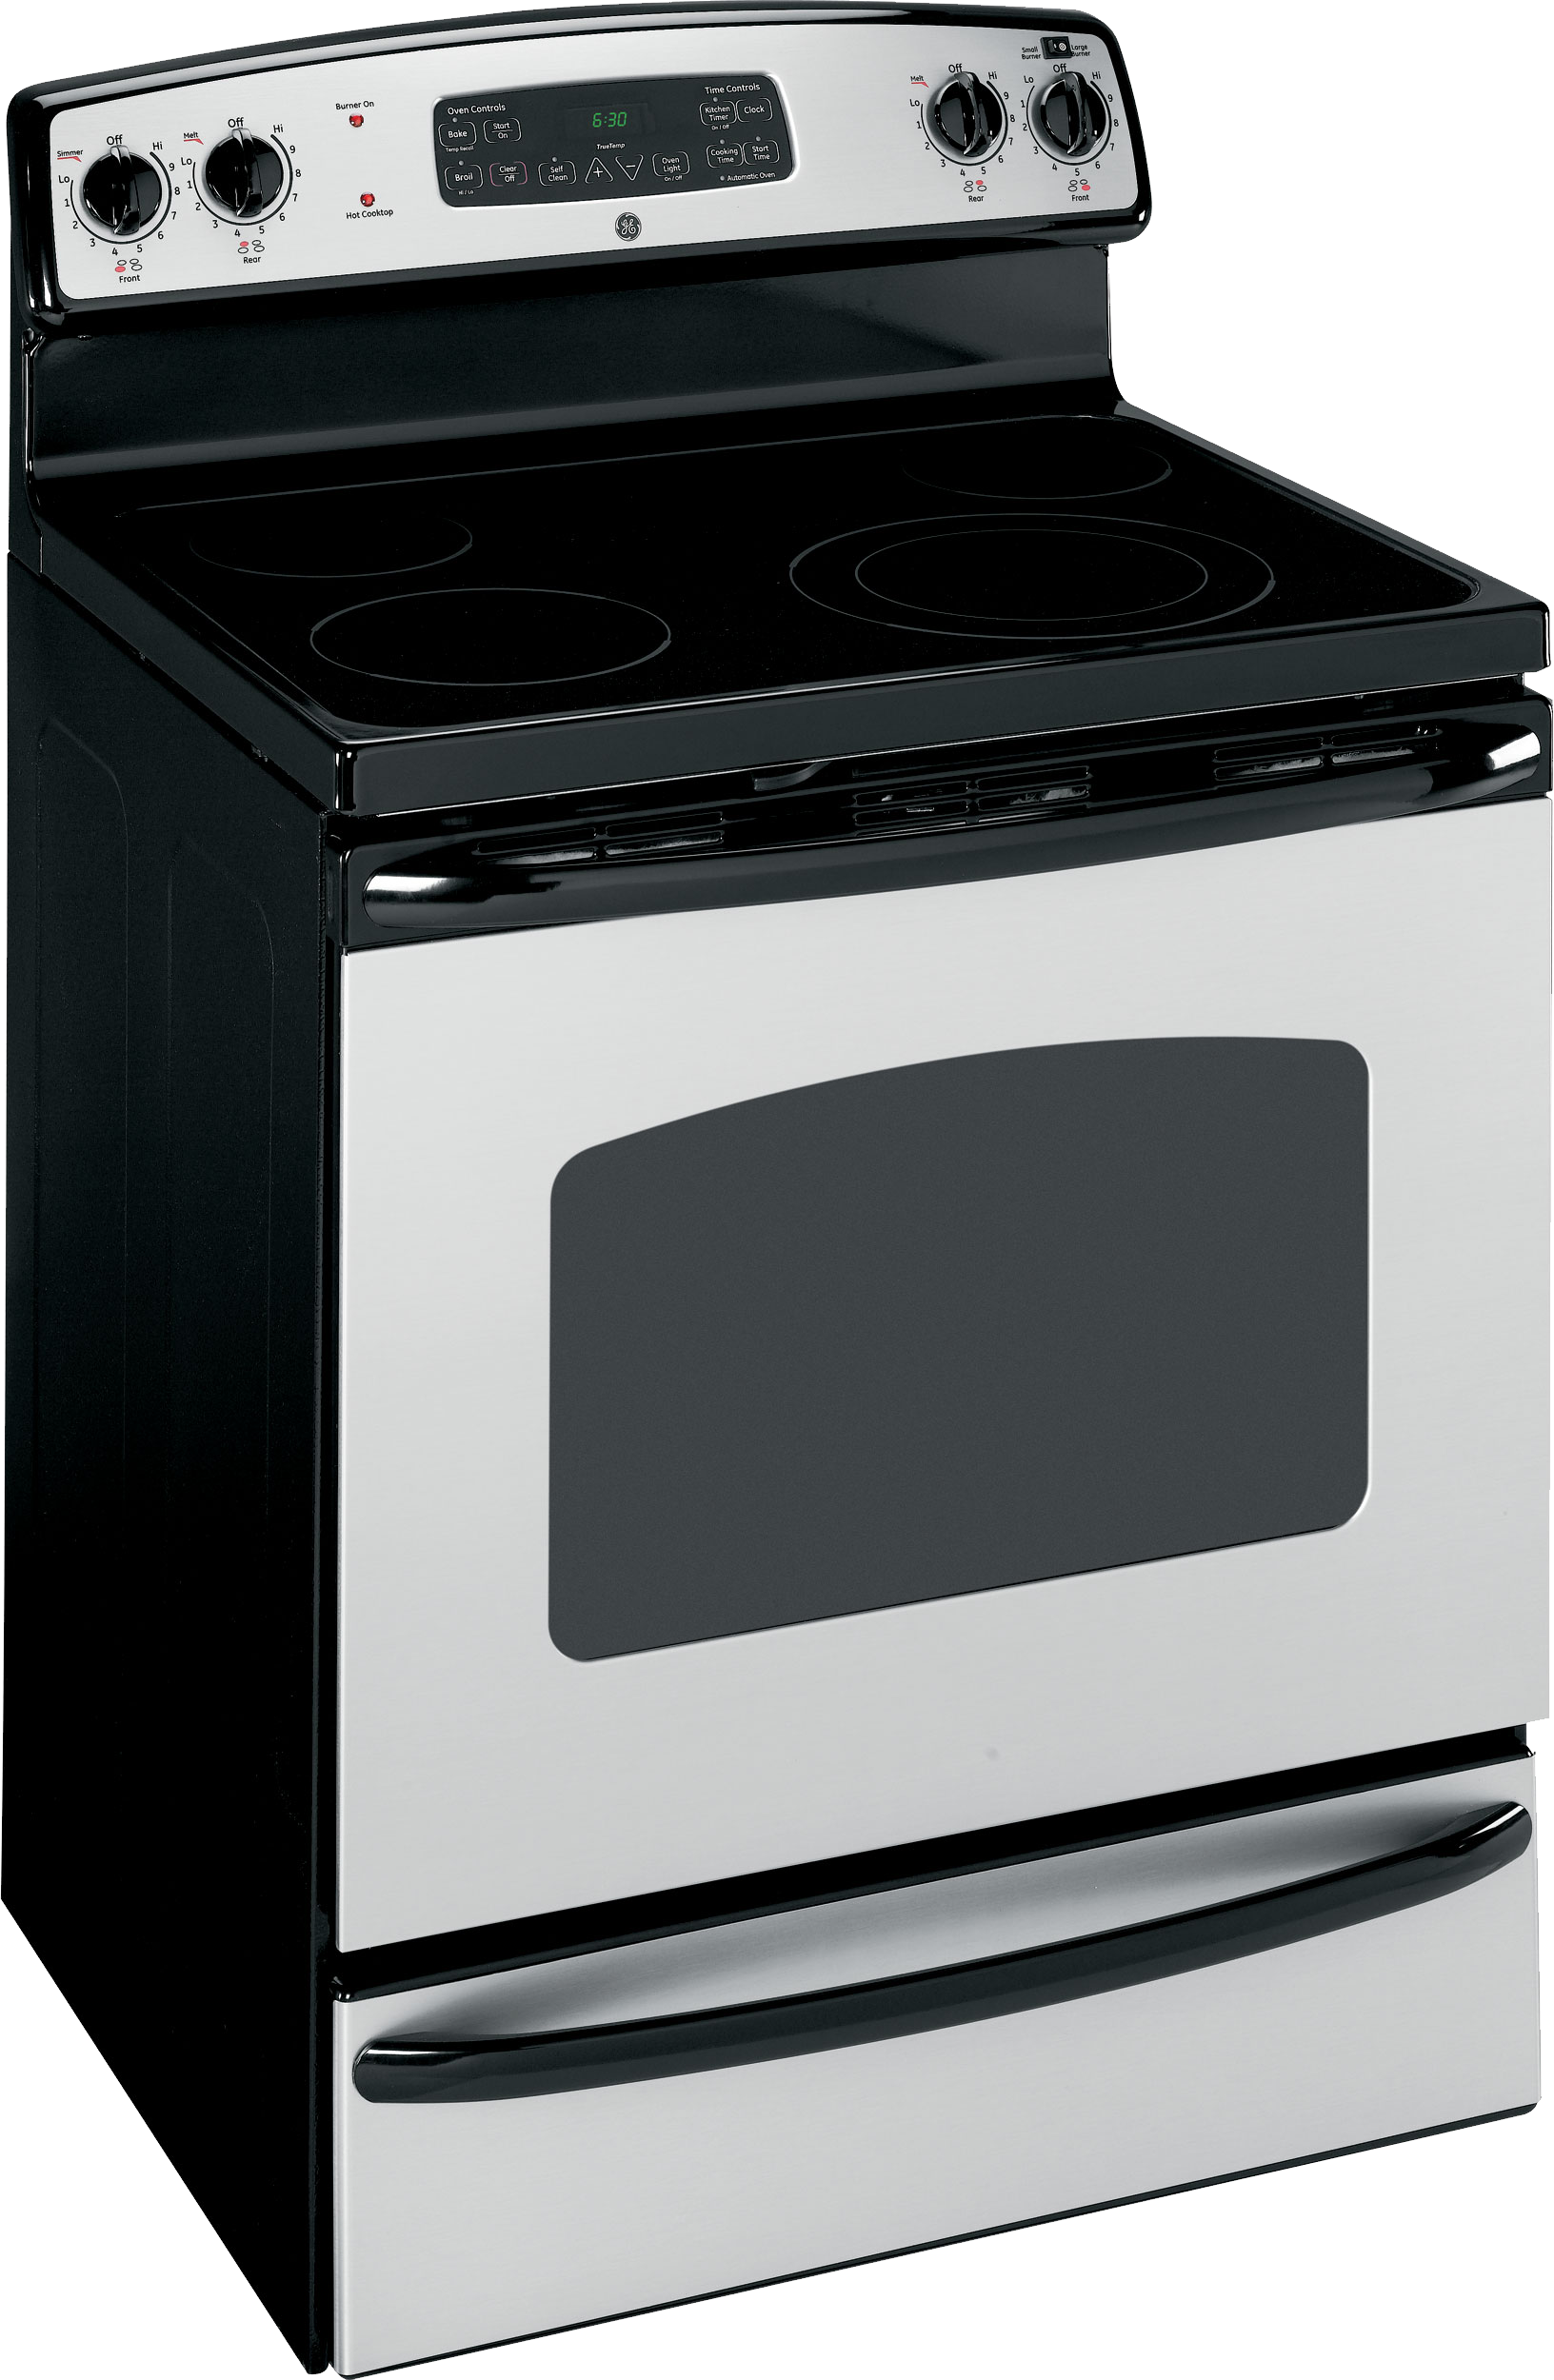 stove clipart stove top